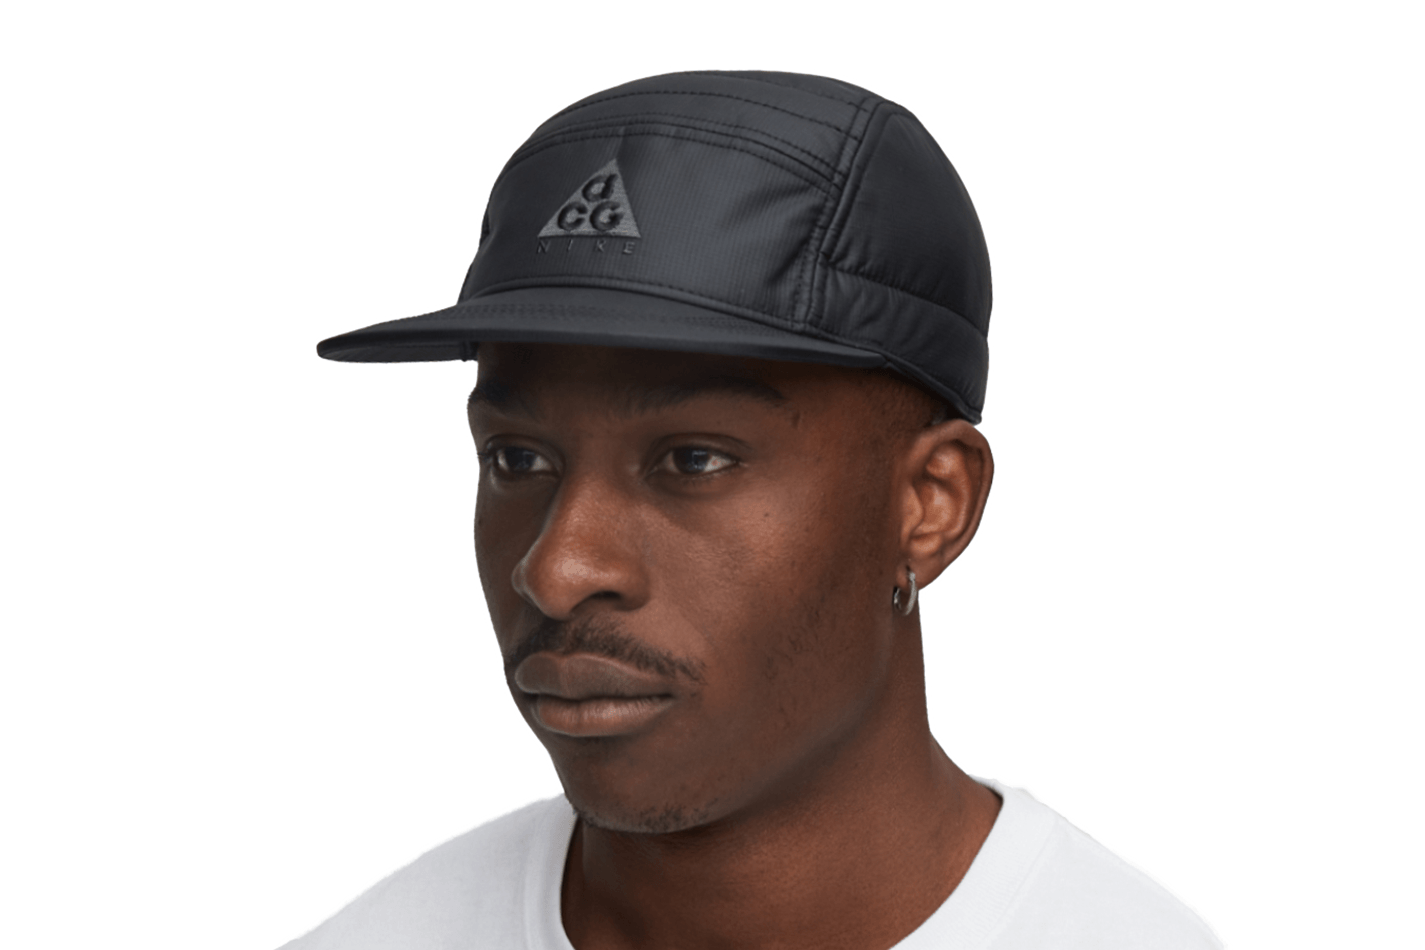 Nike UNISEX Sportswear Dry AW84 ACG Hat BRAND NEW ALL CONDITIONS GEAR SOLD OUT